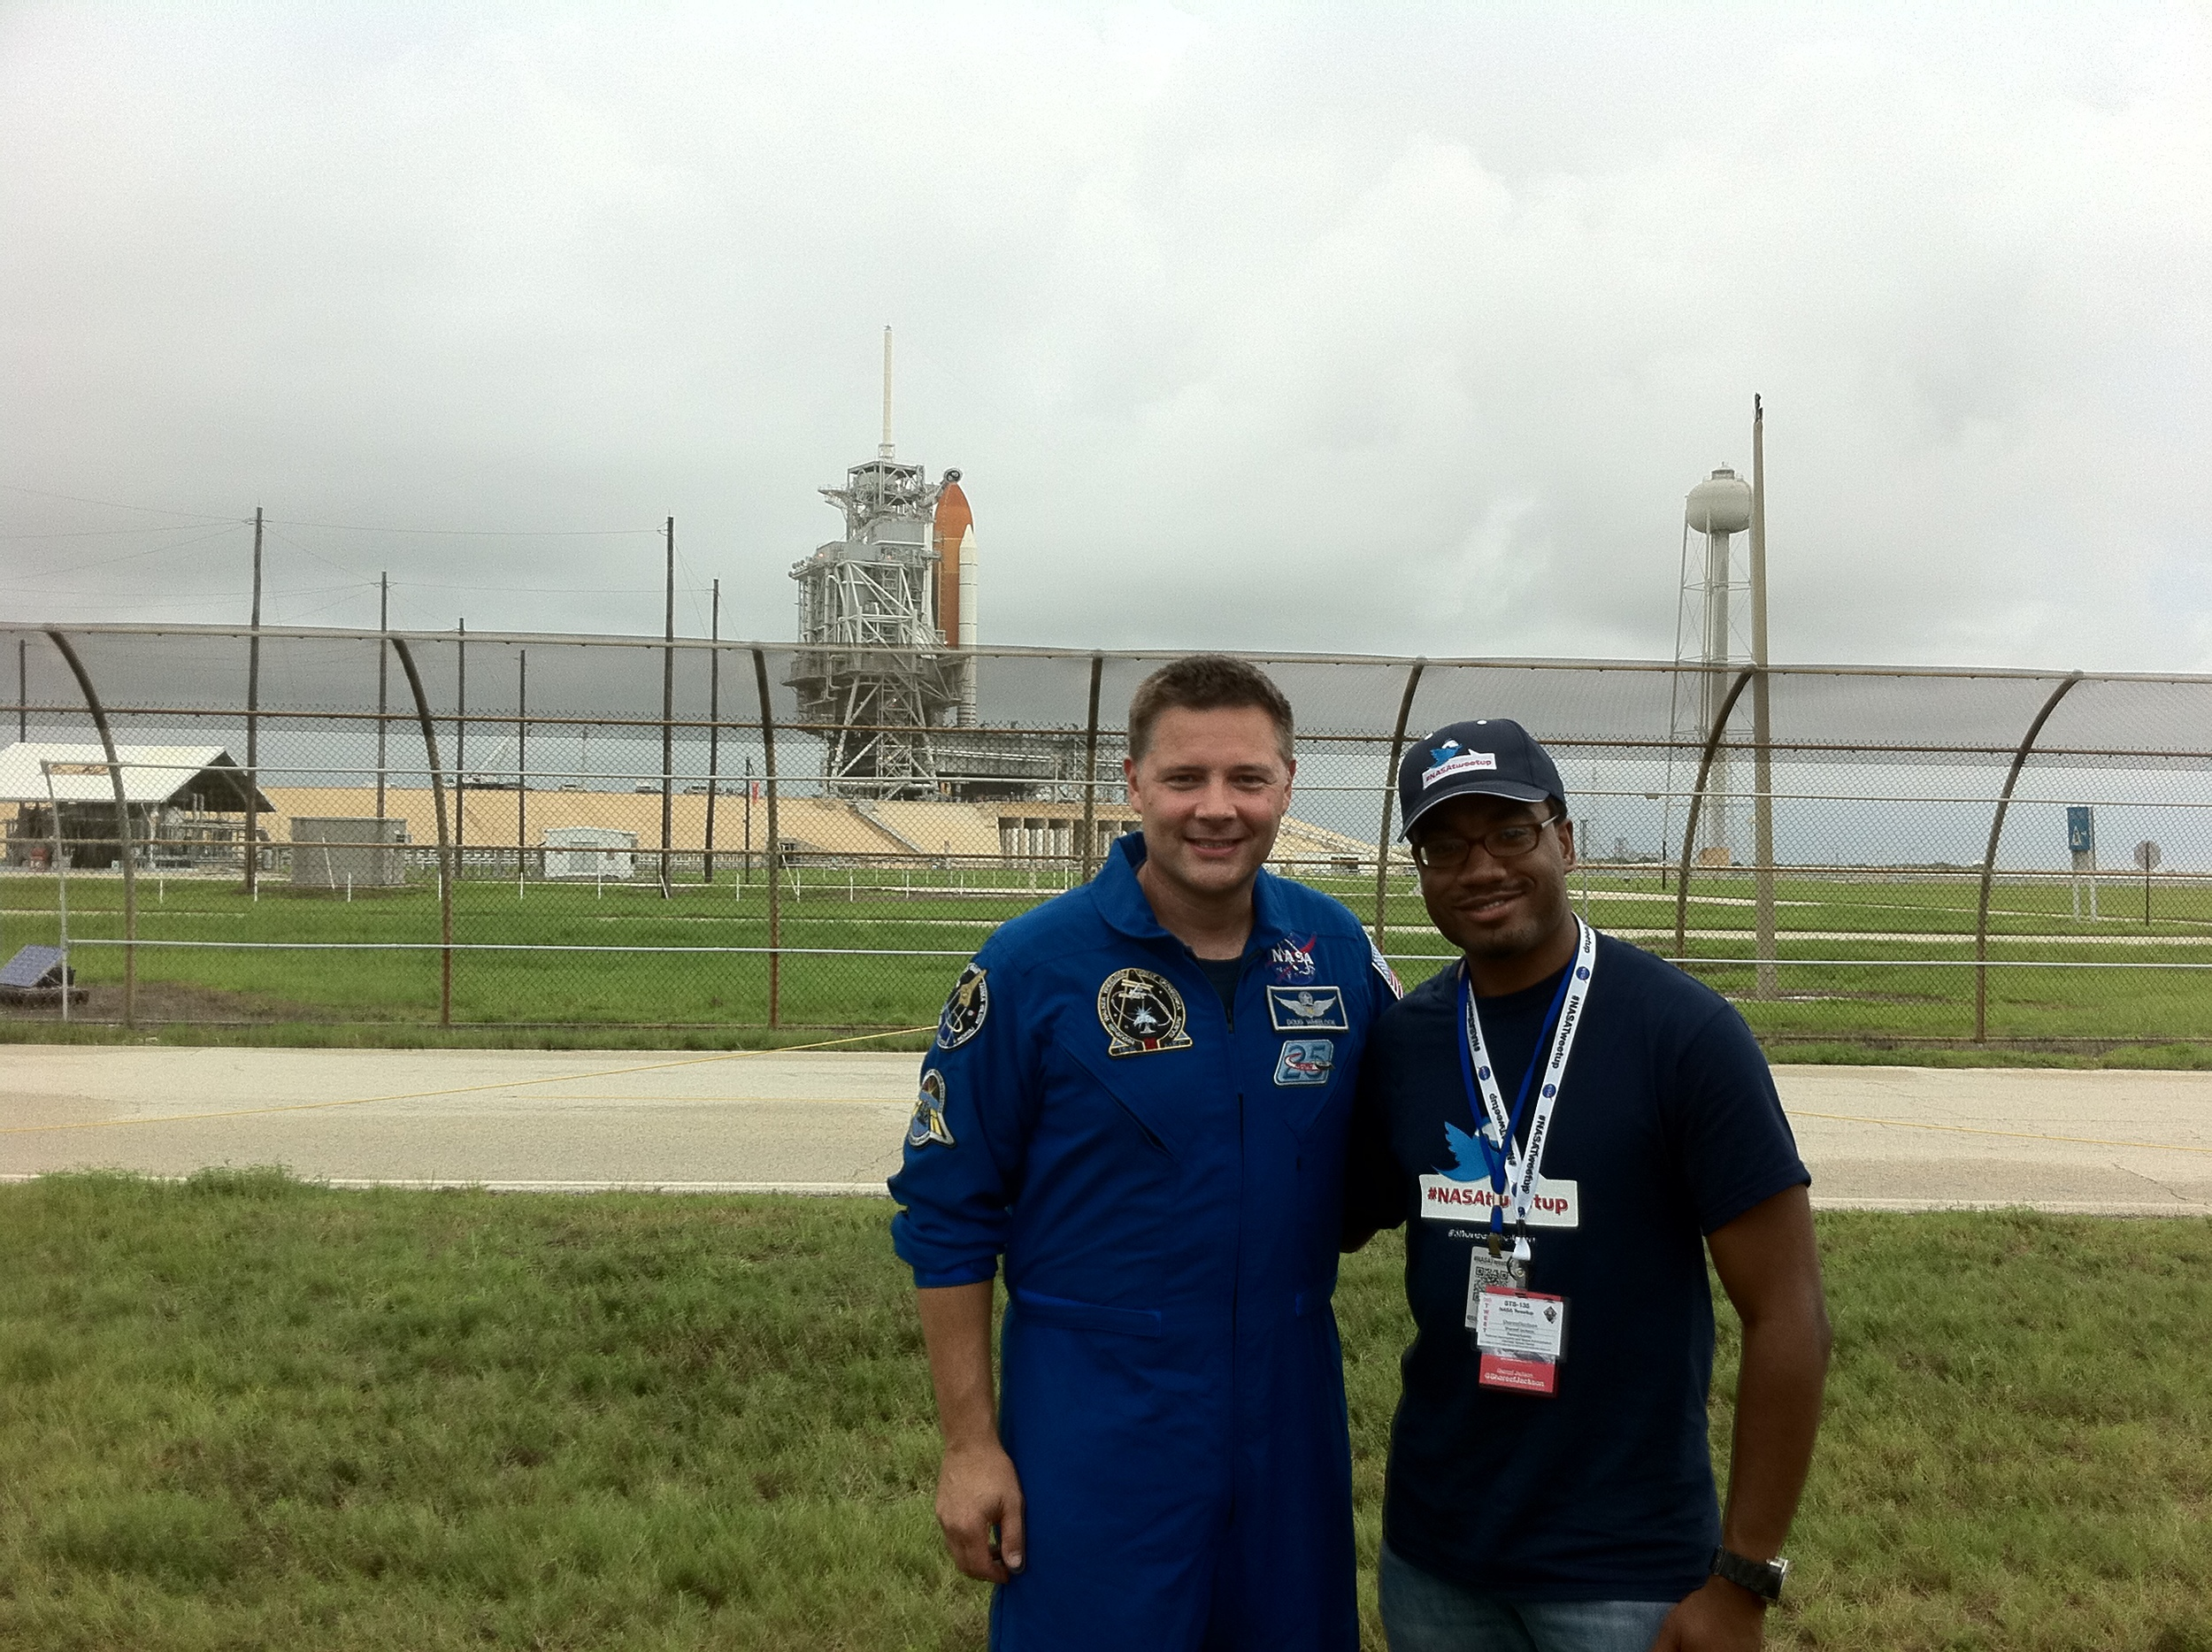 Me and Astronaut Doug Wheelock in front of the Space Shuttle Atlantis, the day before liftoff